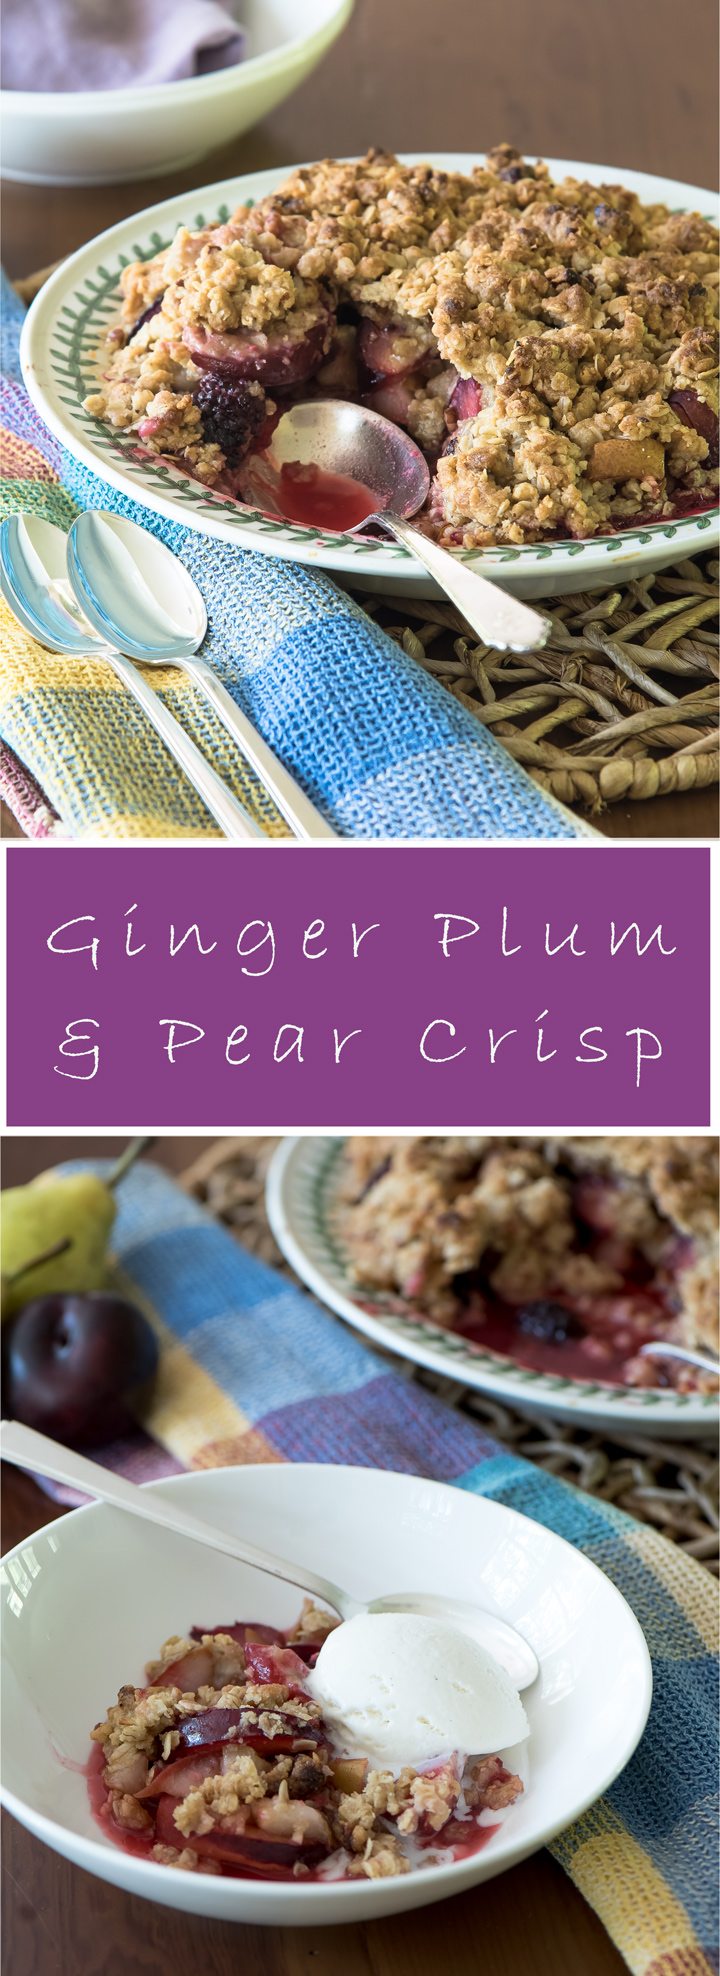 Ginger Plum and Pear Crisp.Recipe for a plum and pear crisp seasoned with fresh ginger and nutmeg.